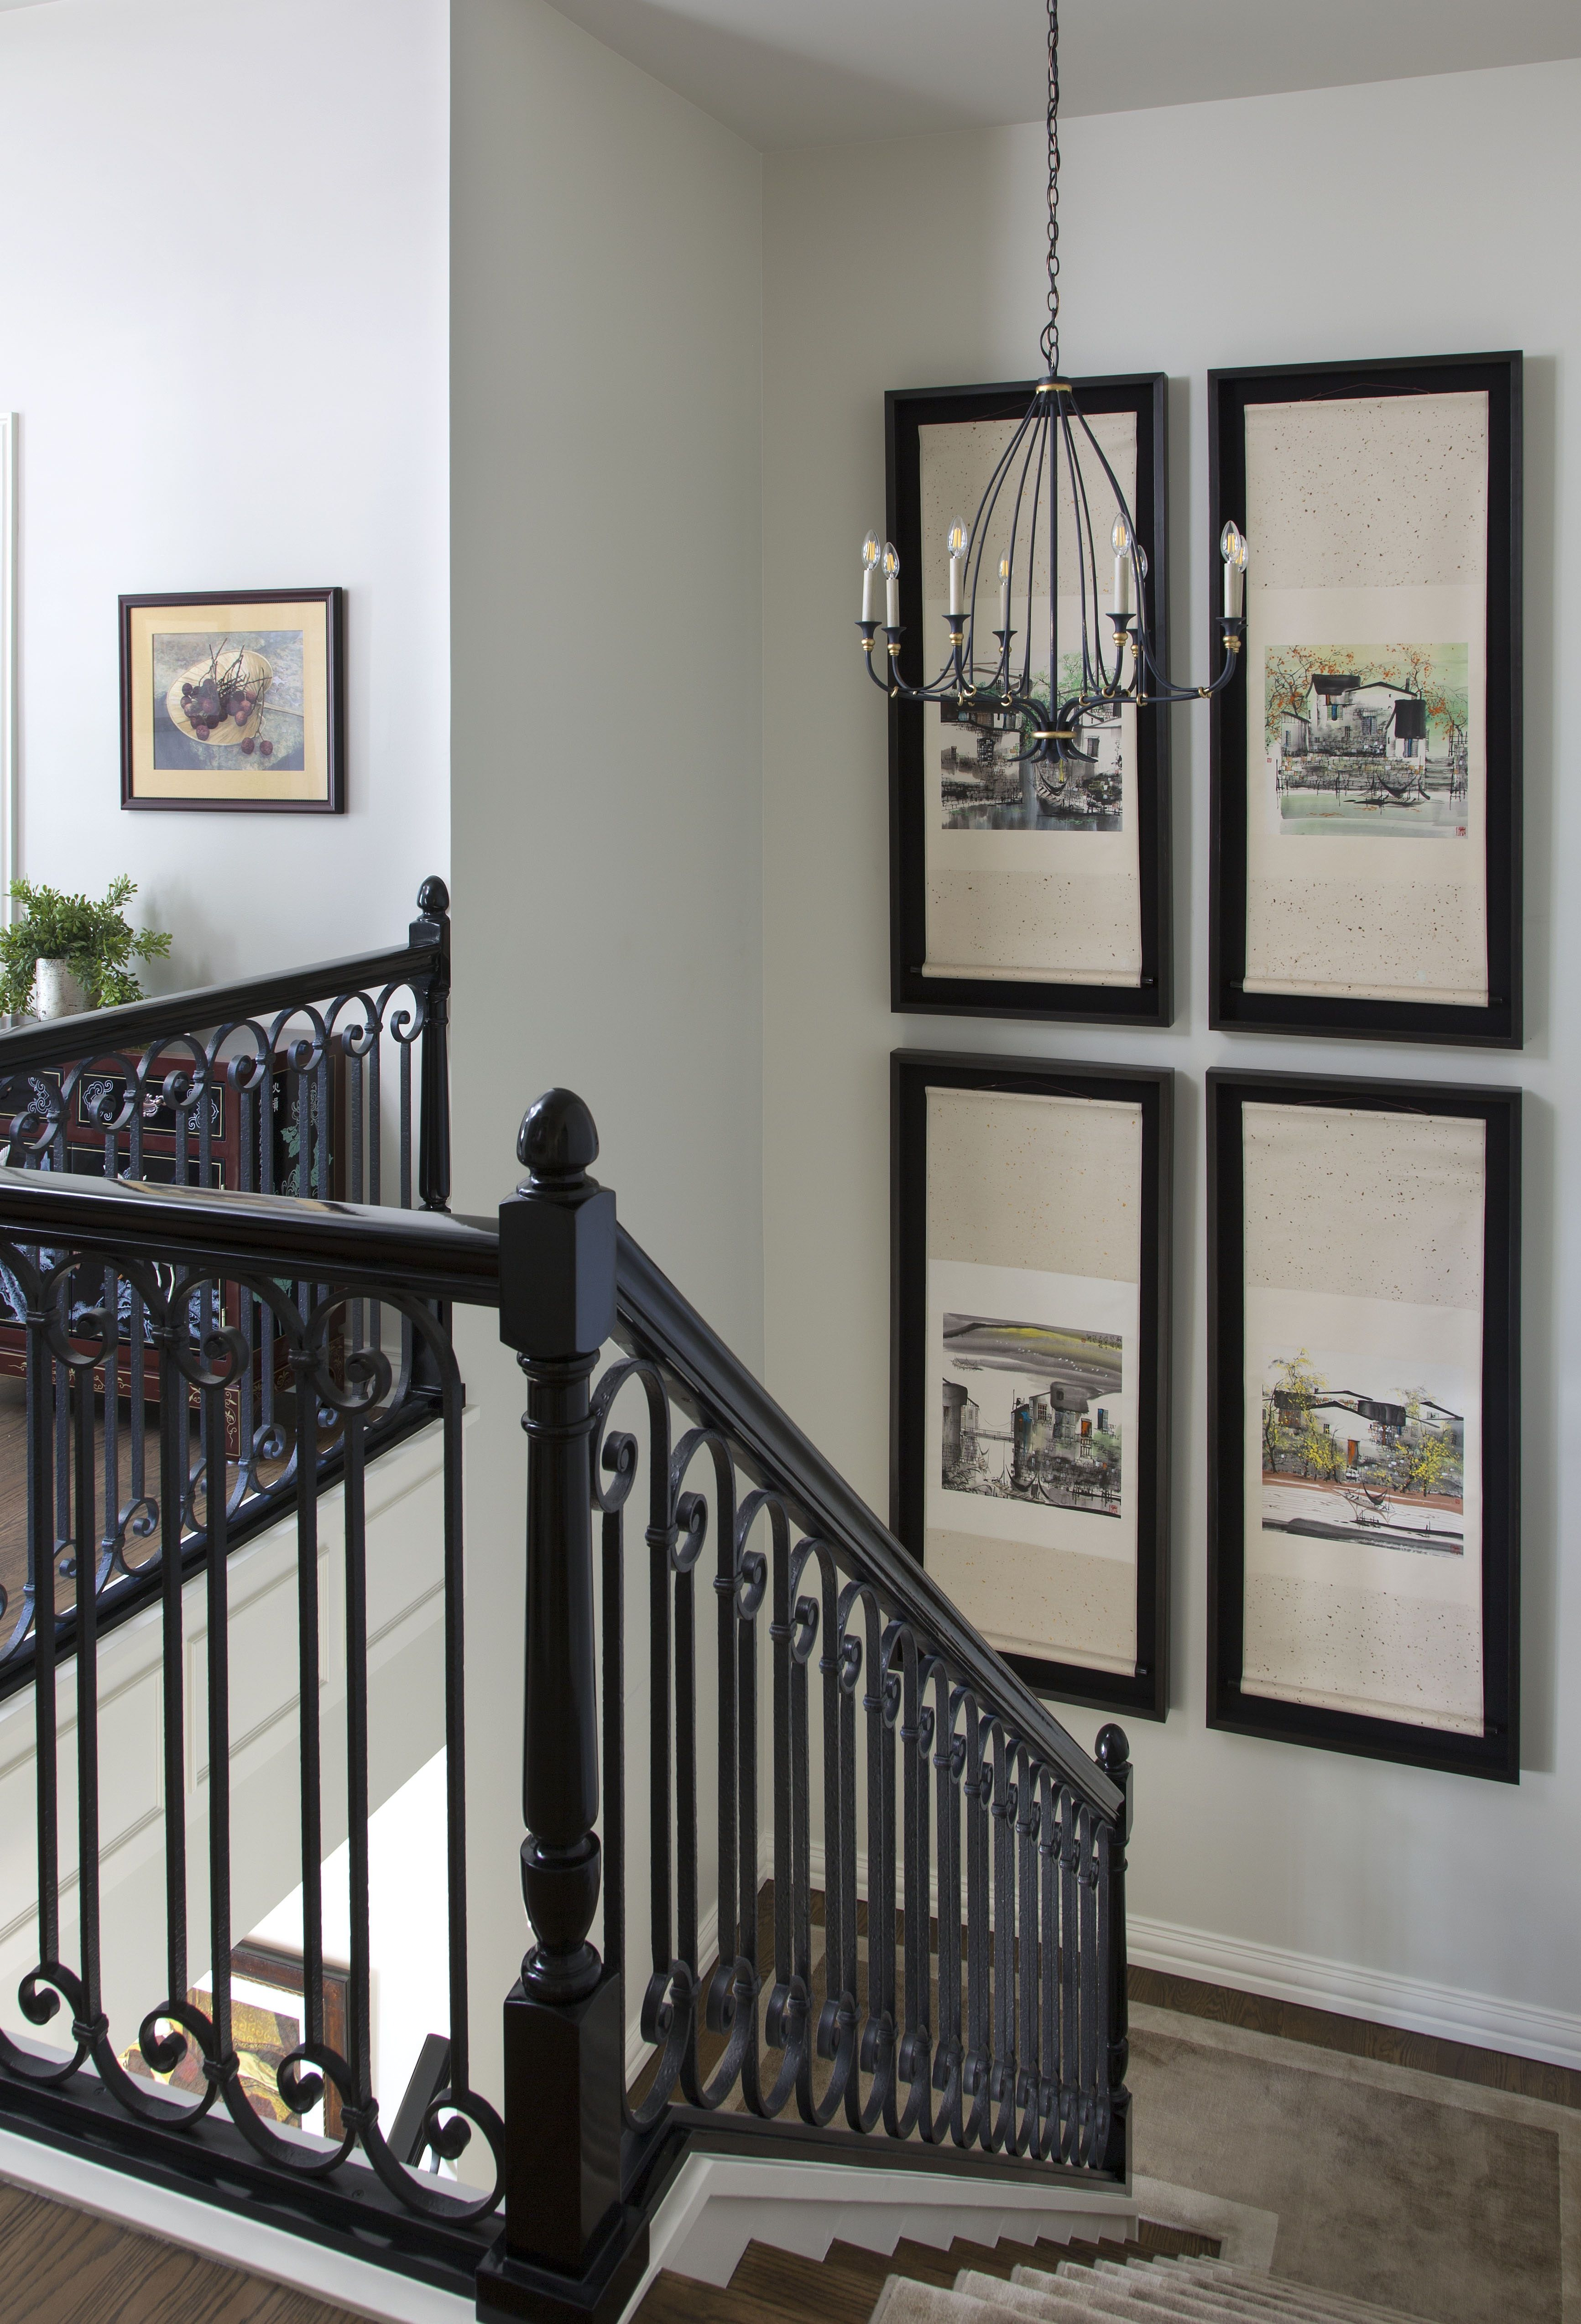 Best French Chateau In Denver Colorado Stair Landing Stair Wall Decor Stairway Decorating 640 x 480